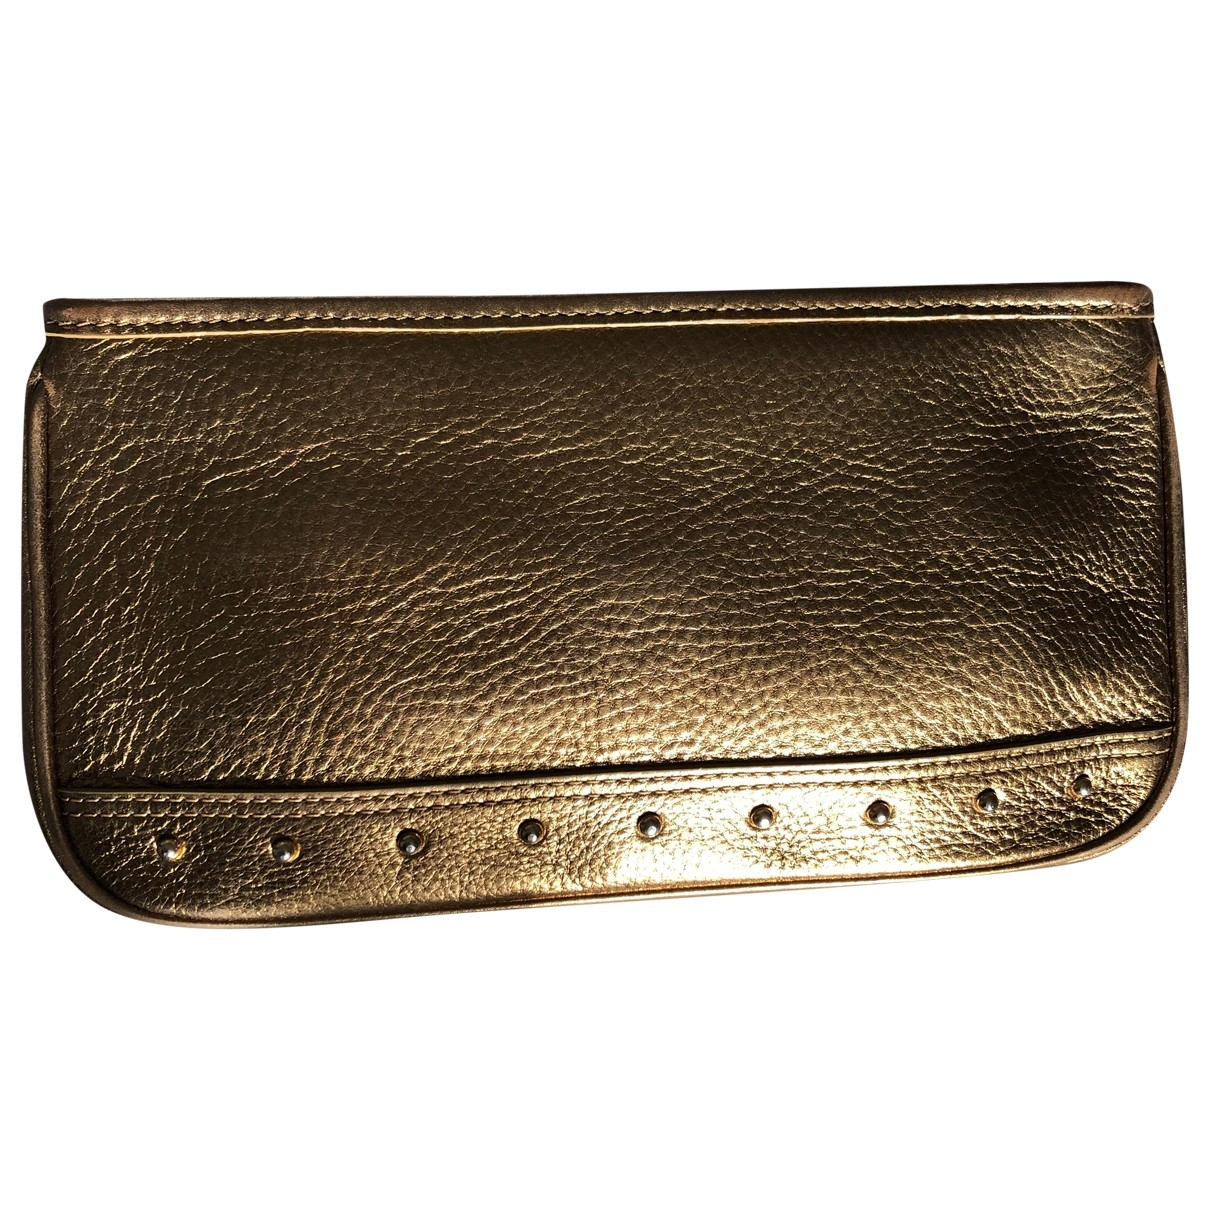 Harrods \N Gold Leather Clutch bag for Women \N